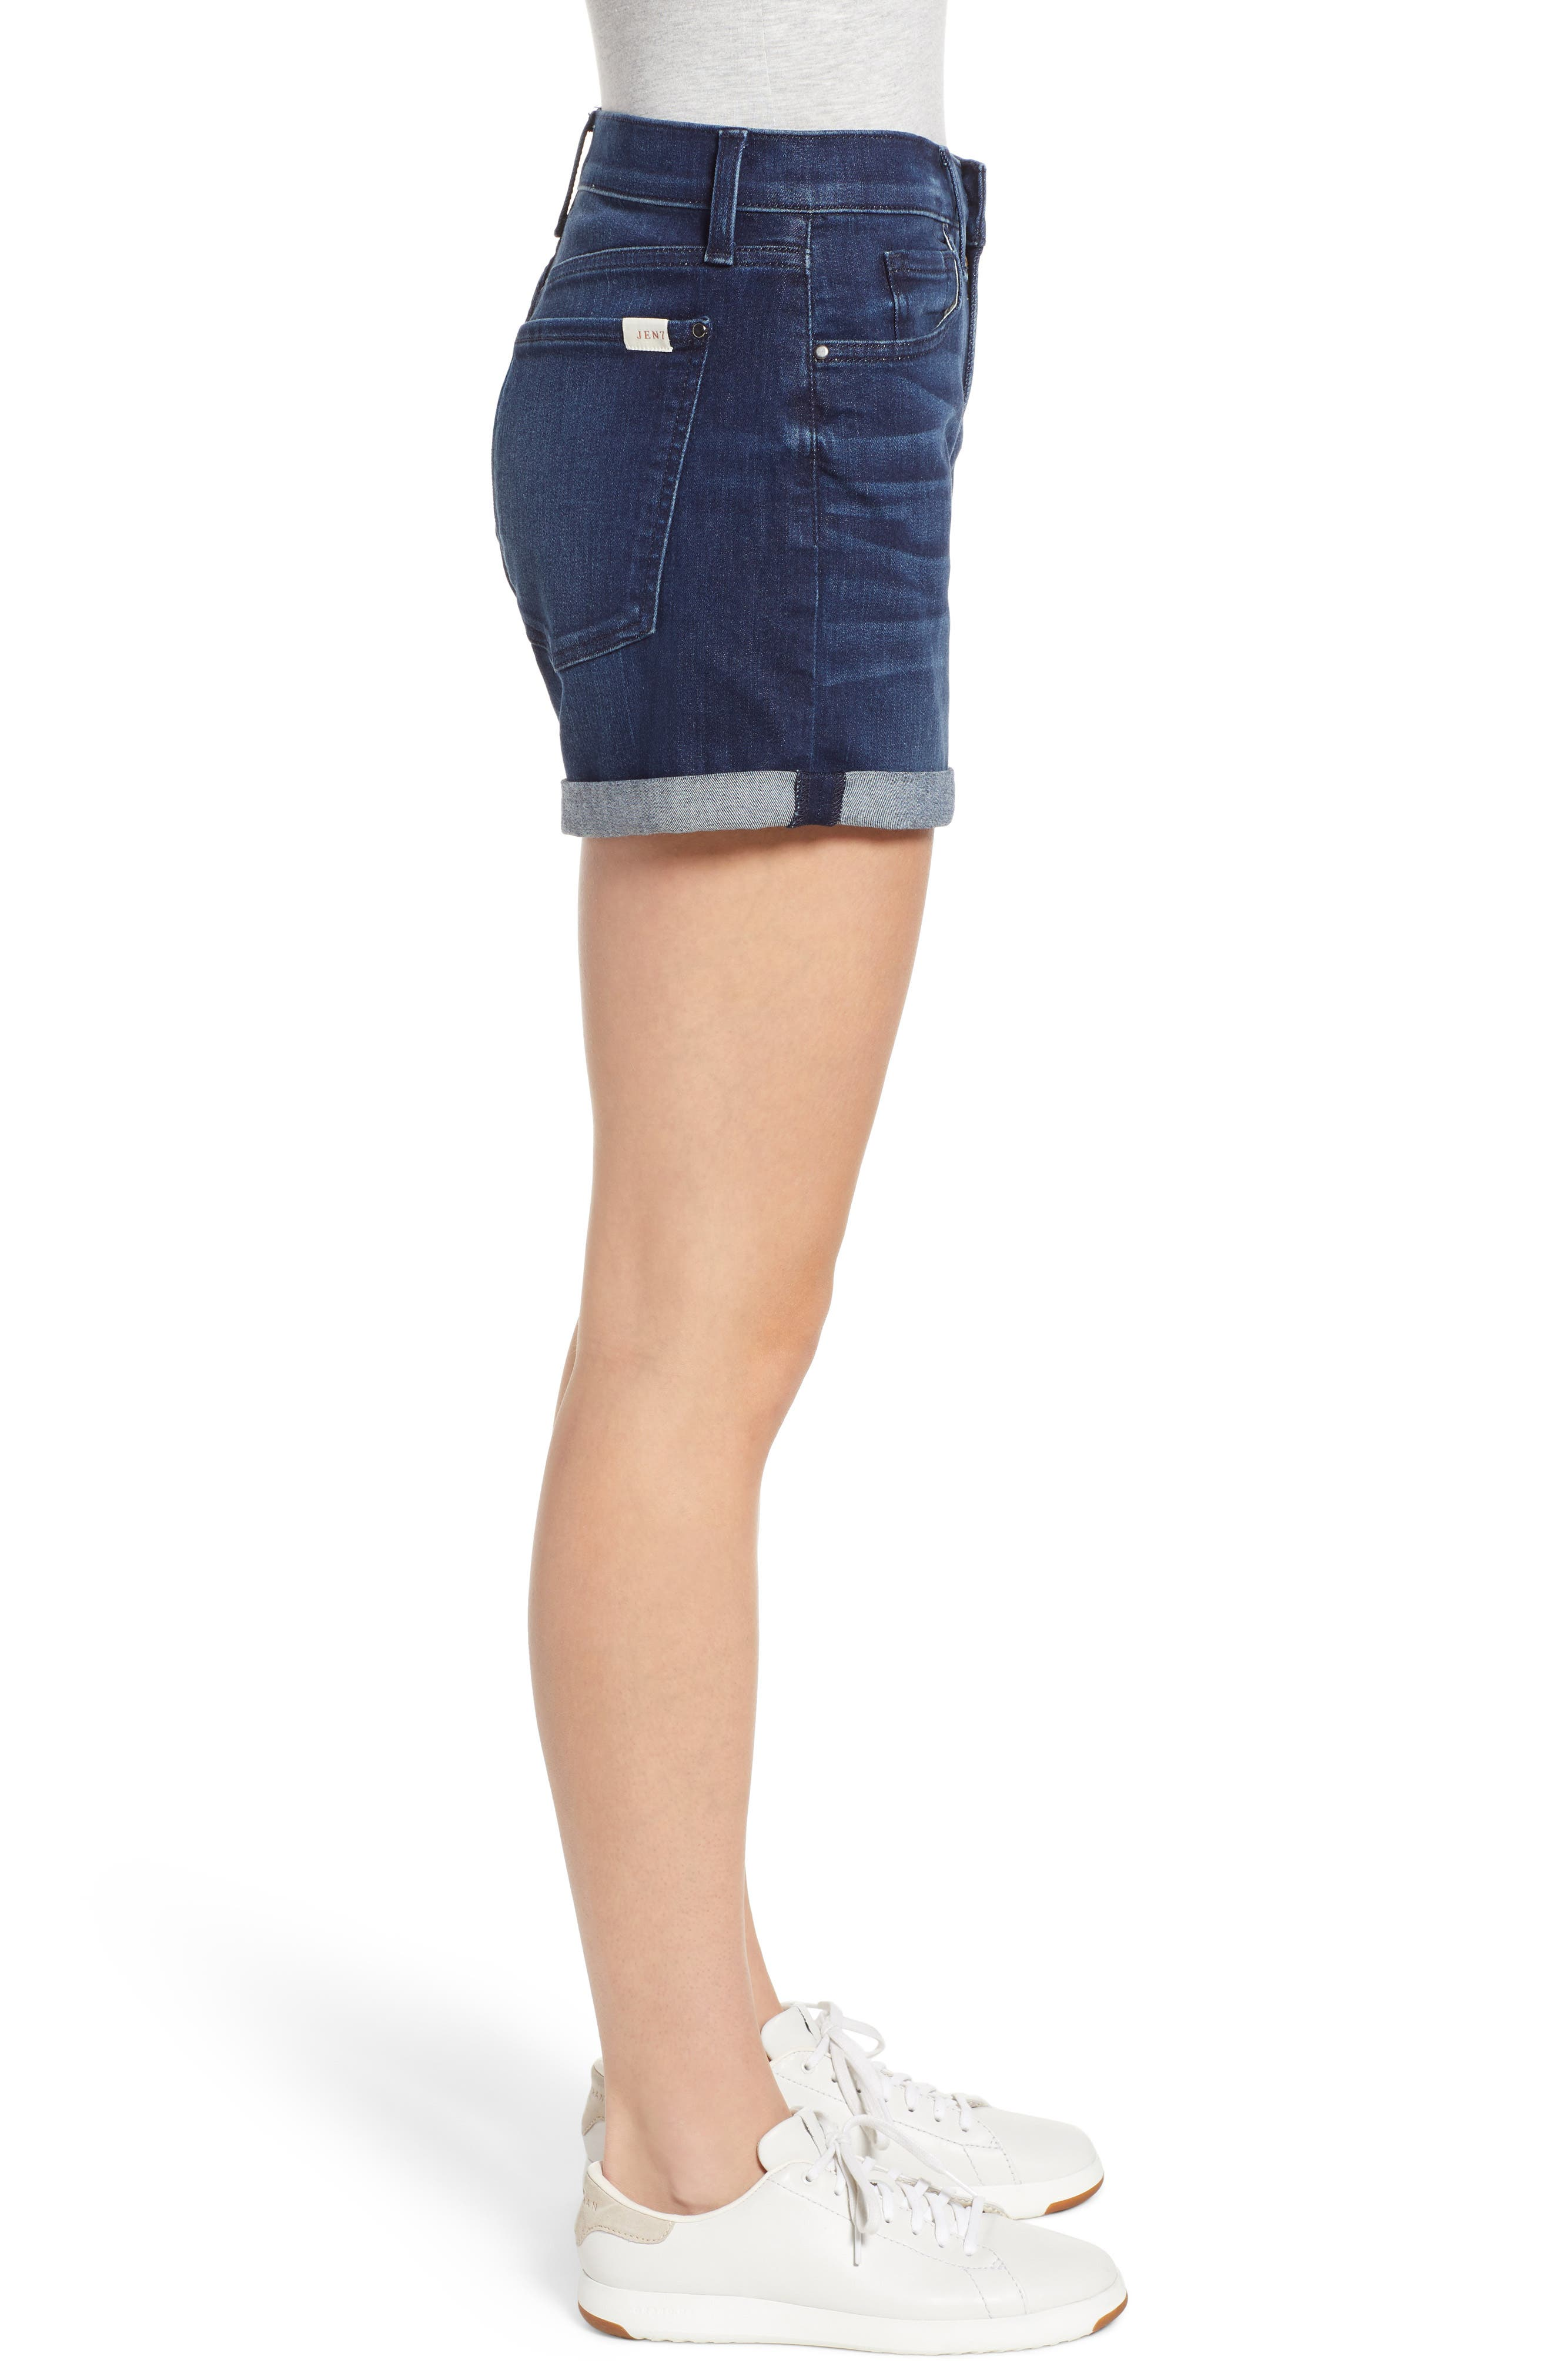 JEN7 BY 7 FOR ALL MANKIND, Roll Cuff Denim Shorts, Alternate thumbnail 3, color, IMPERIAL INDIGO